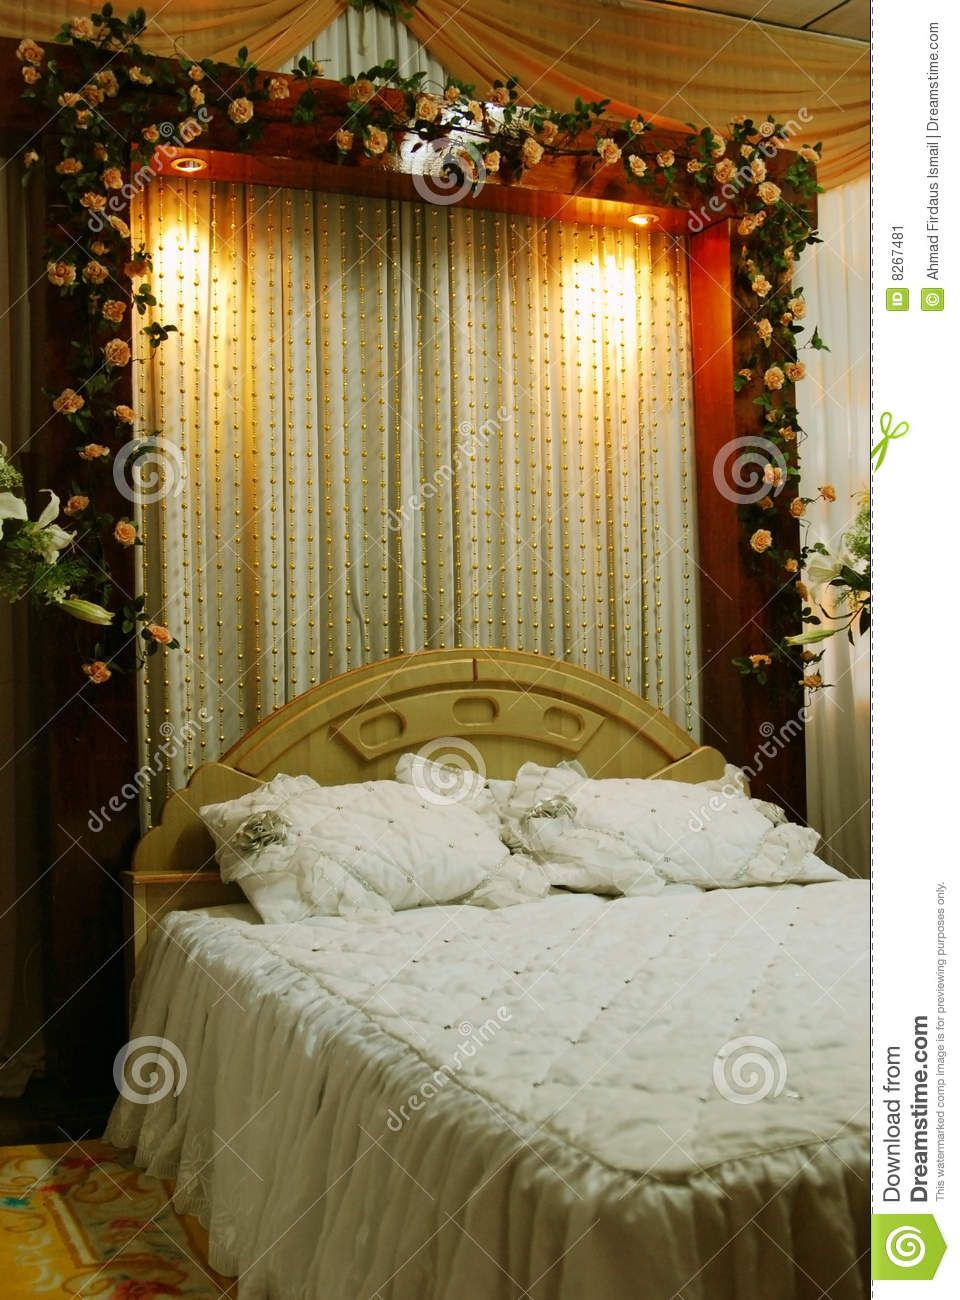 Romantic Bedroom At Night: Pin By My Wedding Journey On Wedding Bed Decoration